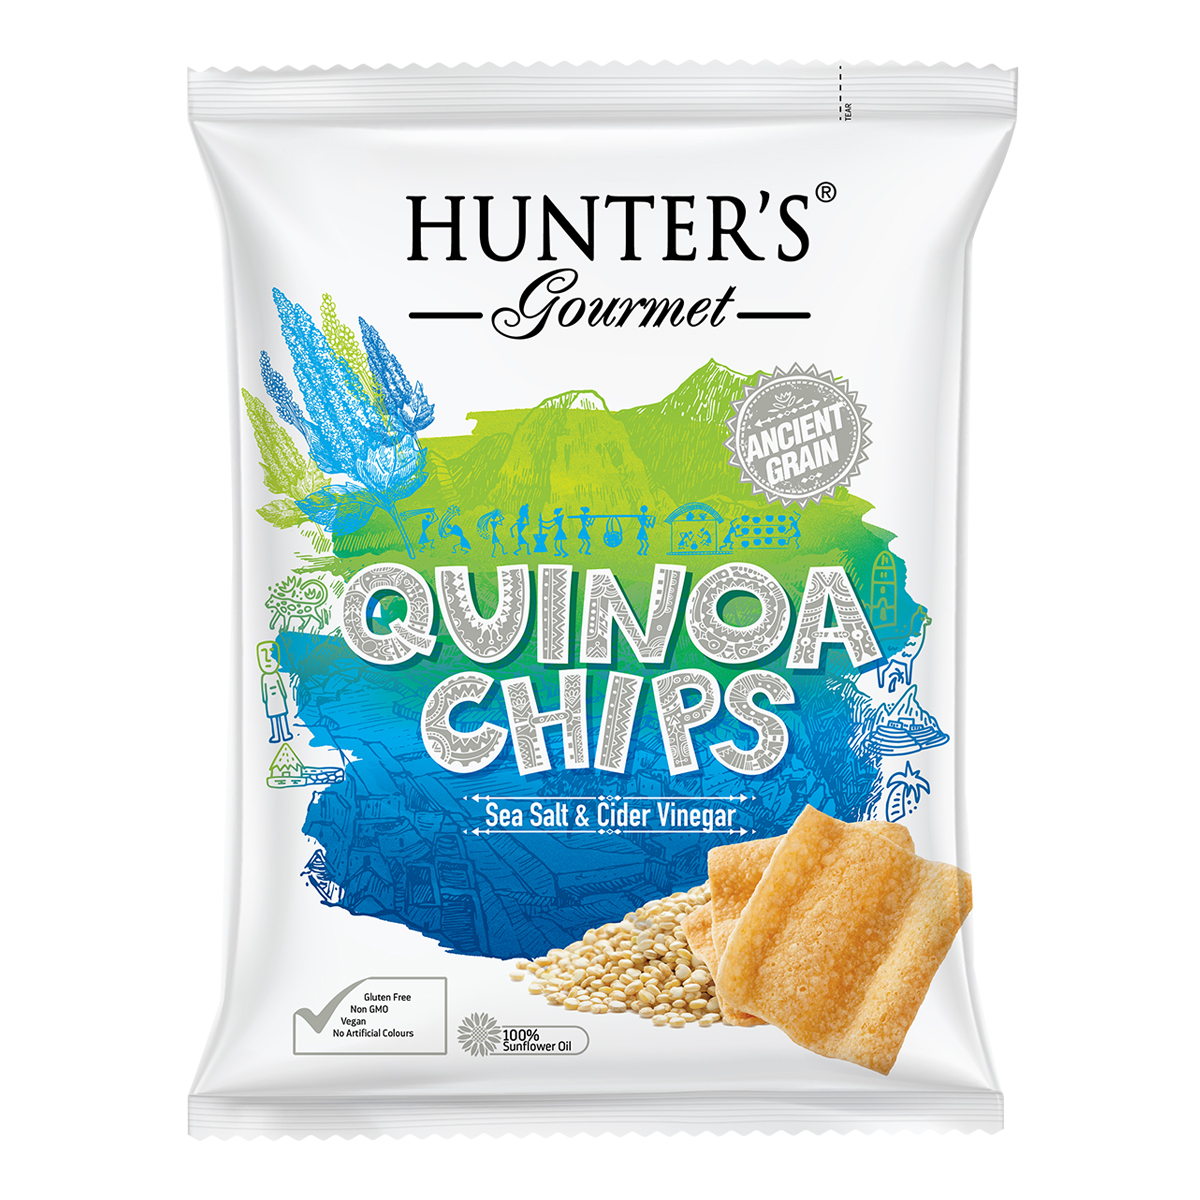 Hunter's Gourmet Quinoa Chips - Sea Salt & Cider Vinegar (75gm)